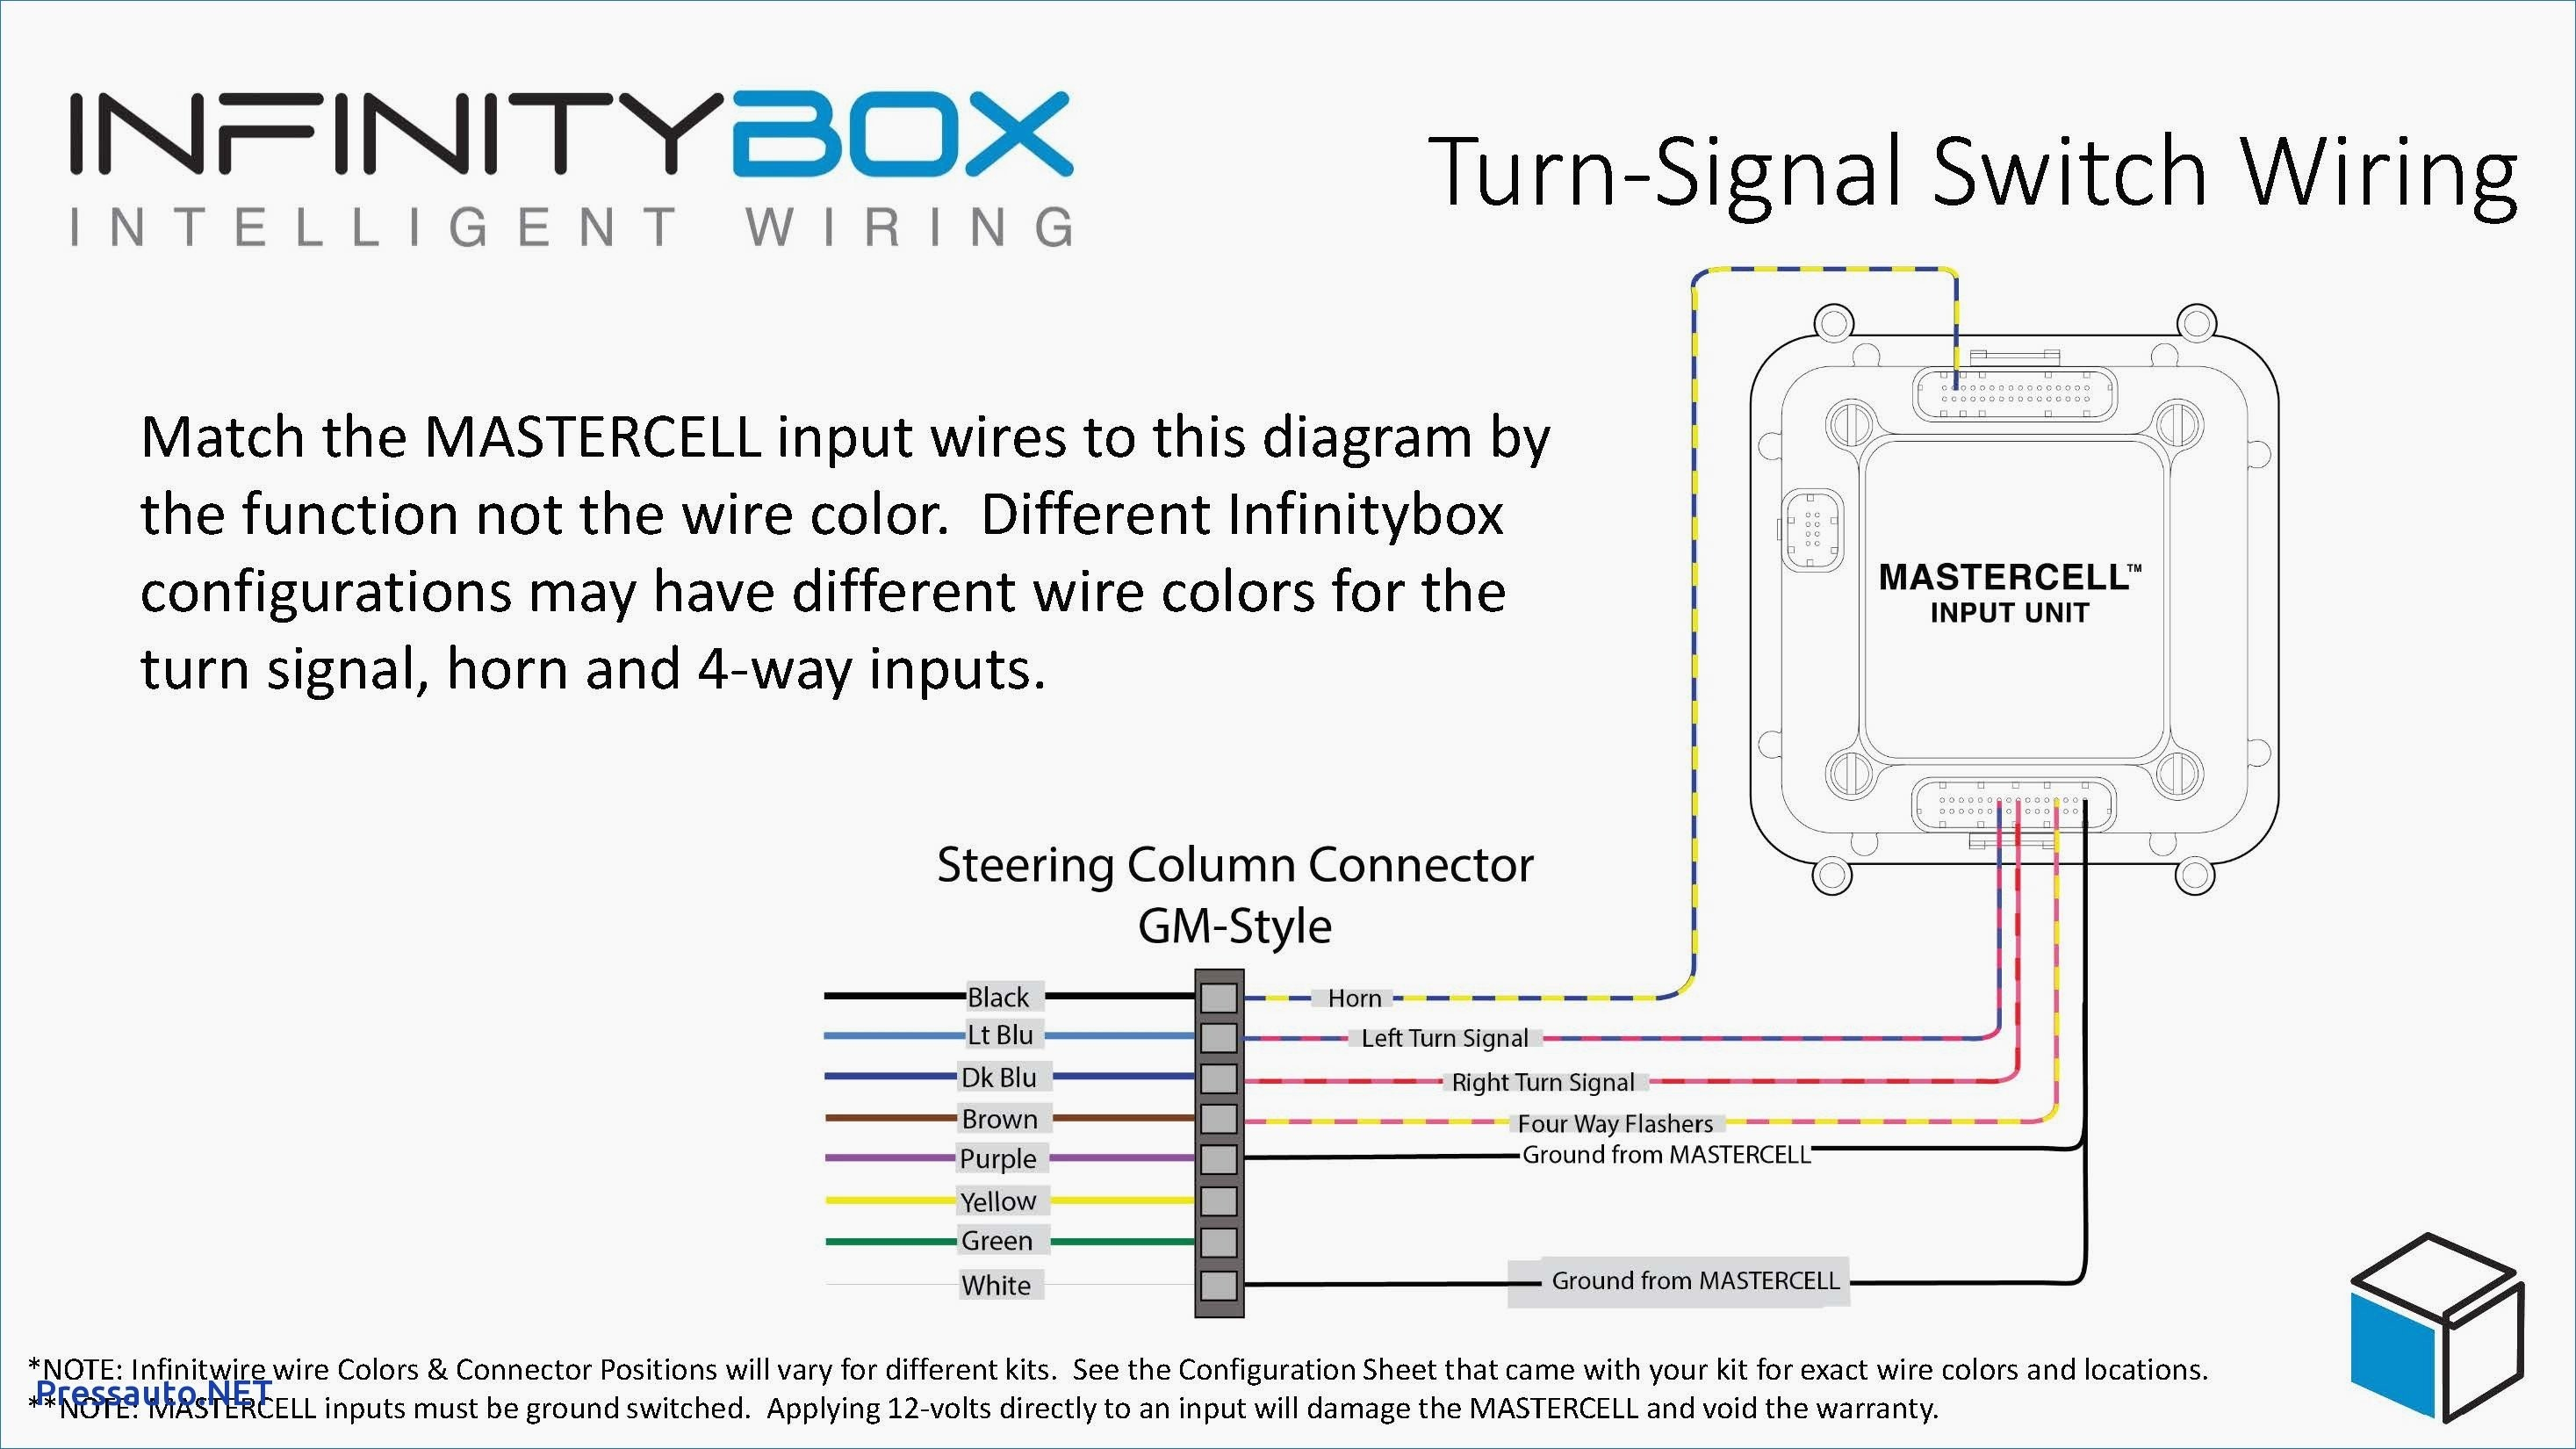 Dxt X2769ui Wiring Color Diagram 87 300zx Wiring Harness Diagram Vww 69 Ab12 Jeanjaures37 Fr